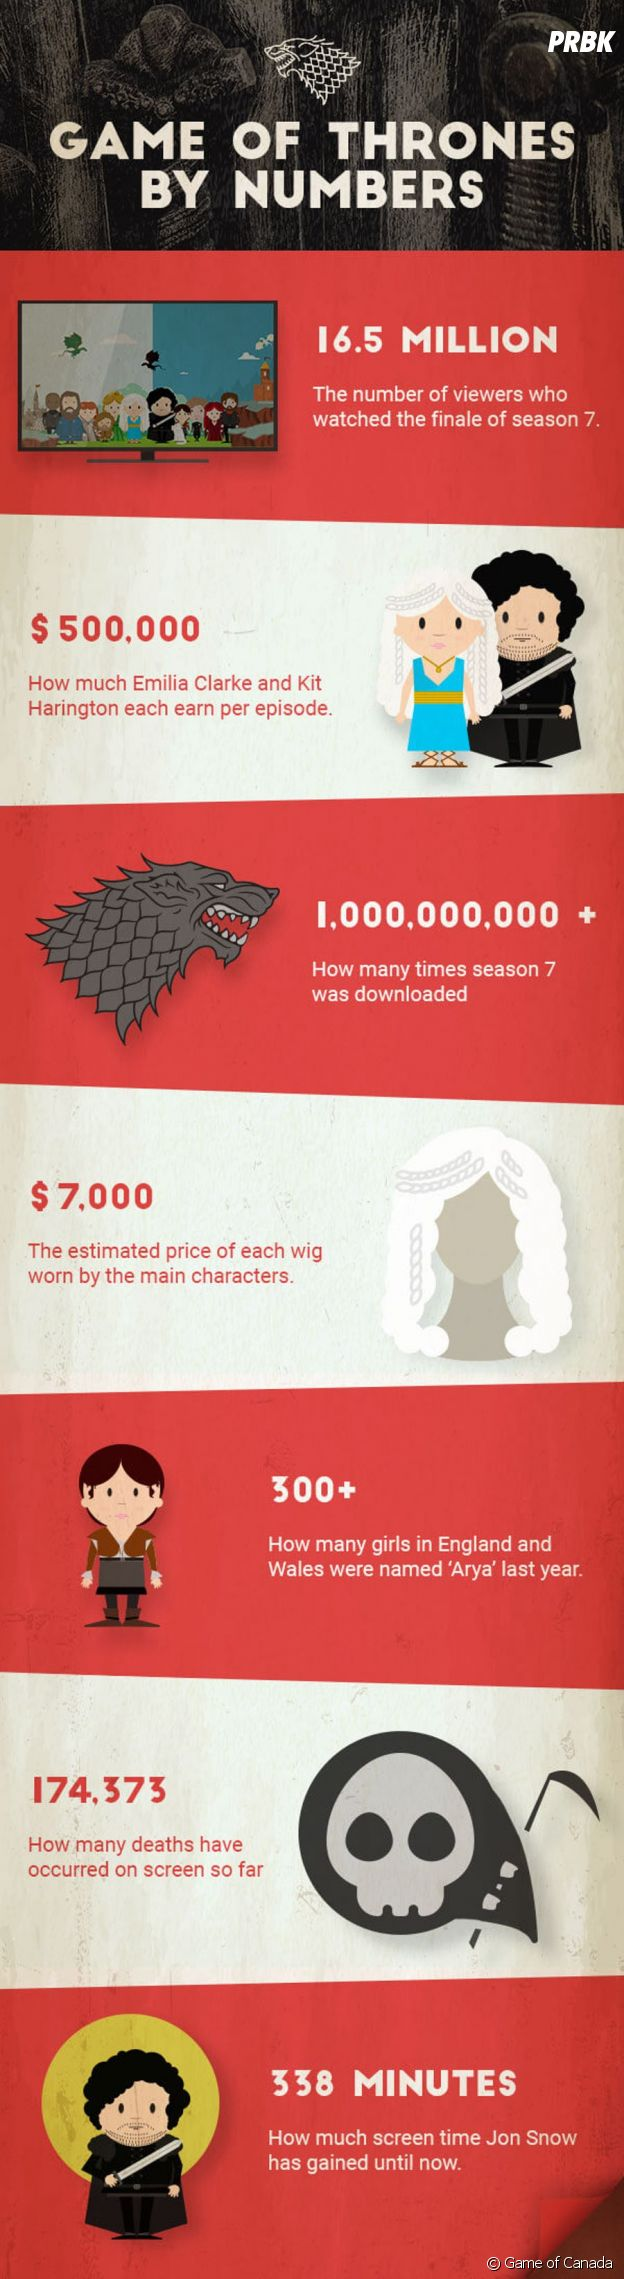 Game of Thrones : infographie